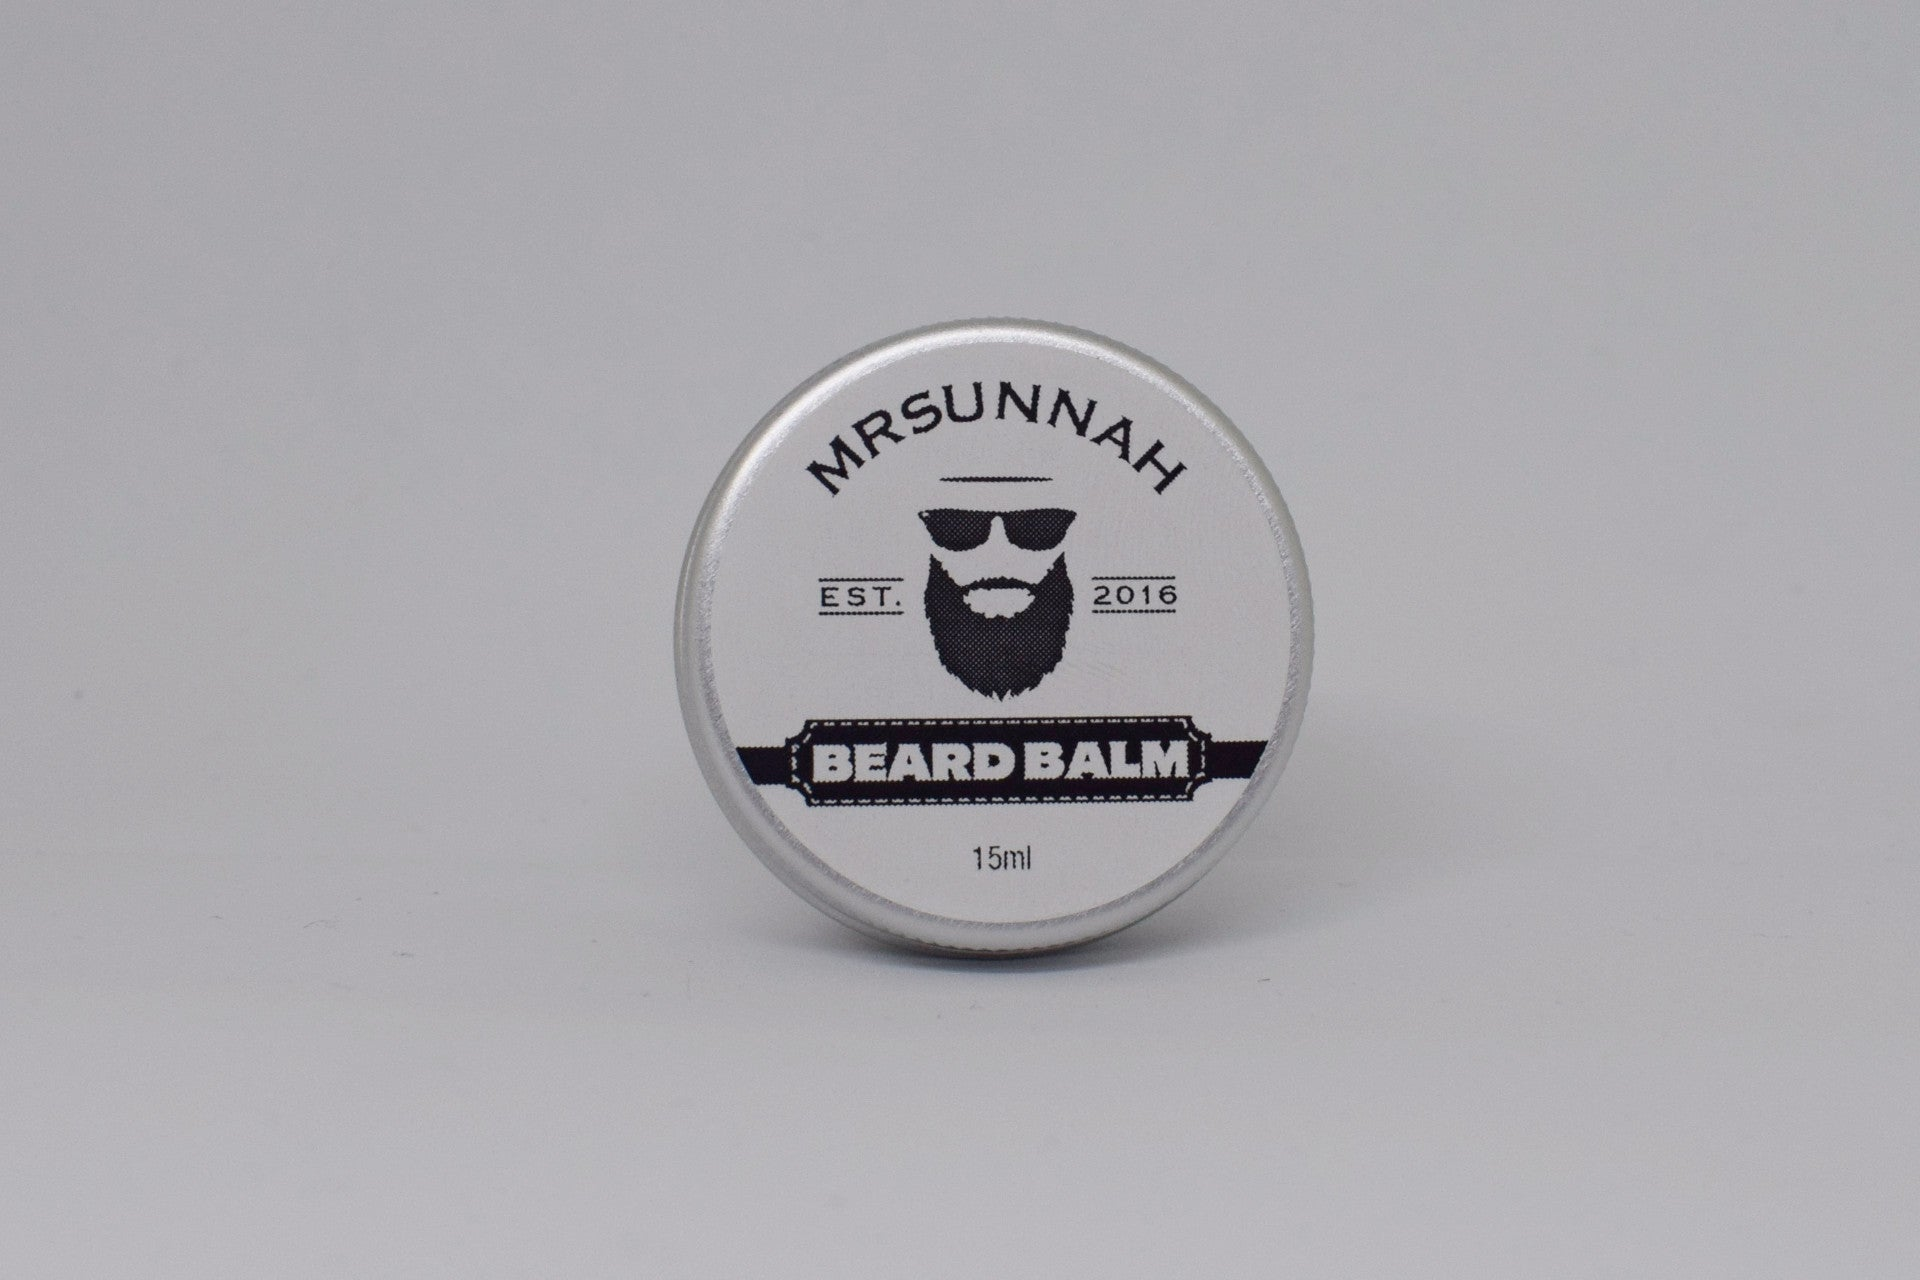 Beard Balm - Mrsunnah Grooming Co